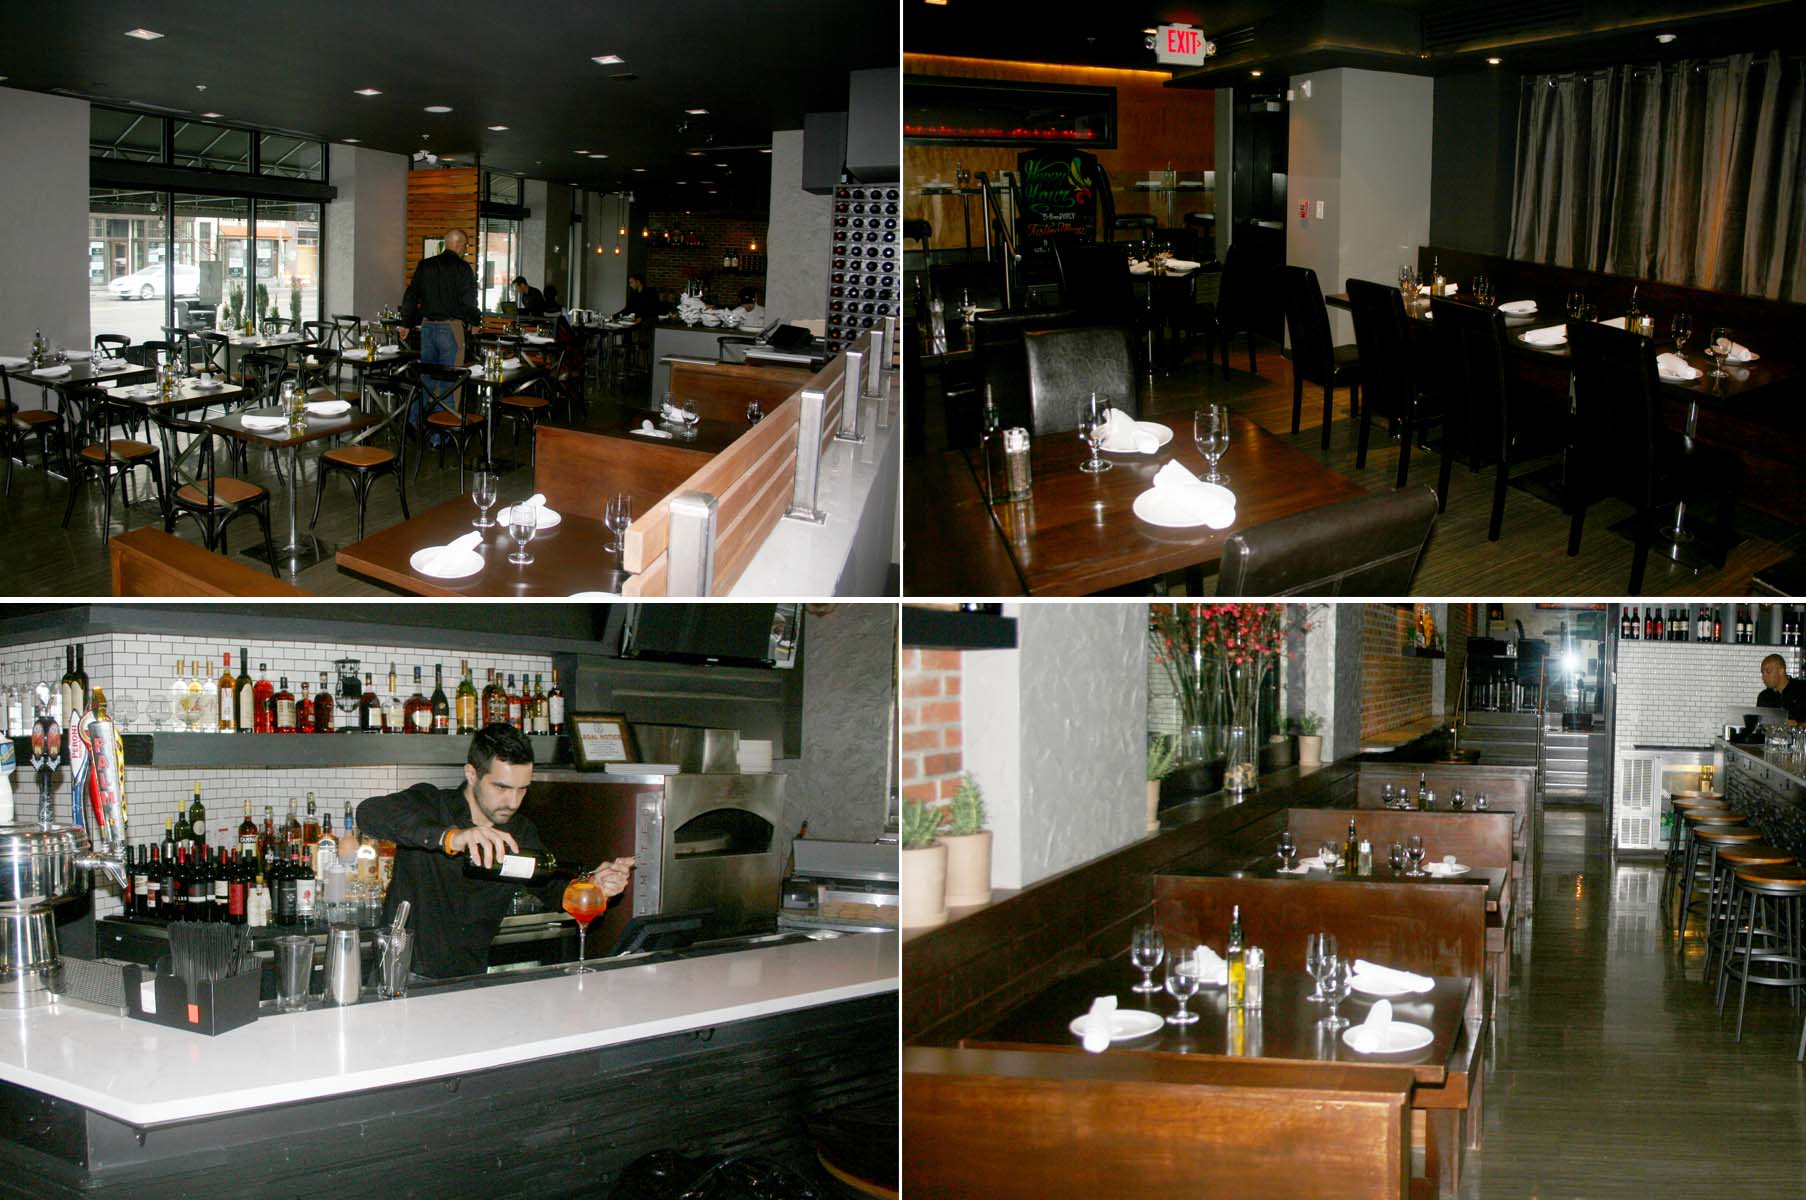 Sette Osteria on 14th Street NW has been remodeled from the former M Cafe Bar from the same owner. (Photos: Mark Heckathorn/DC on Heels)Sette Osteria on 14th Street NW has been remodeled from the former M Cafe Bar from the same owner. (Photos: Mark Heckathorn/DC on Heels)